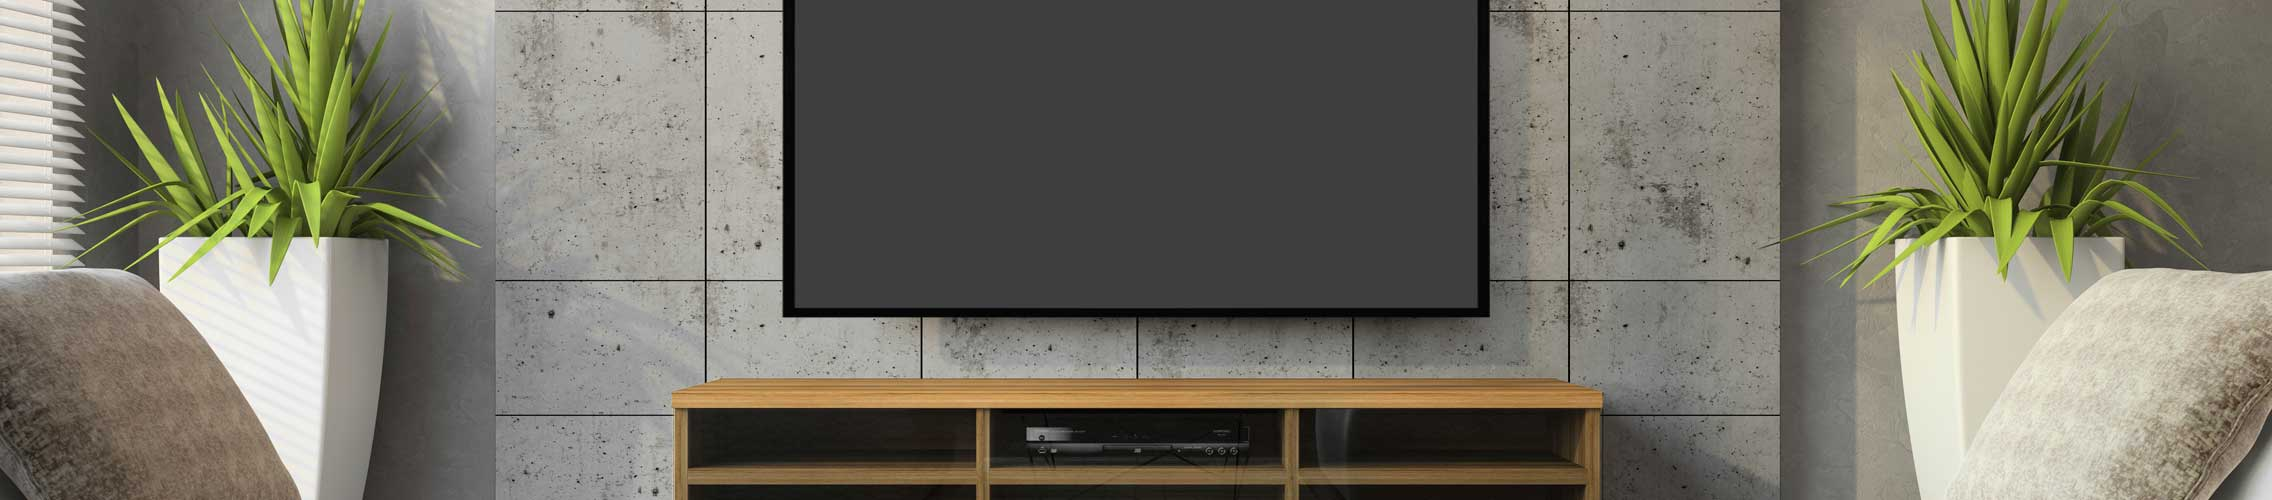 Tv Stand Buying Guide